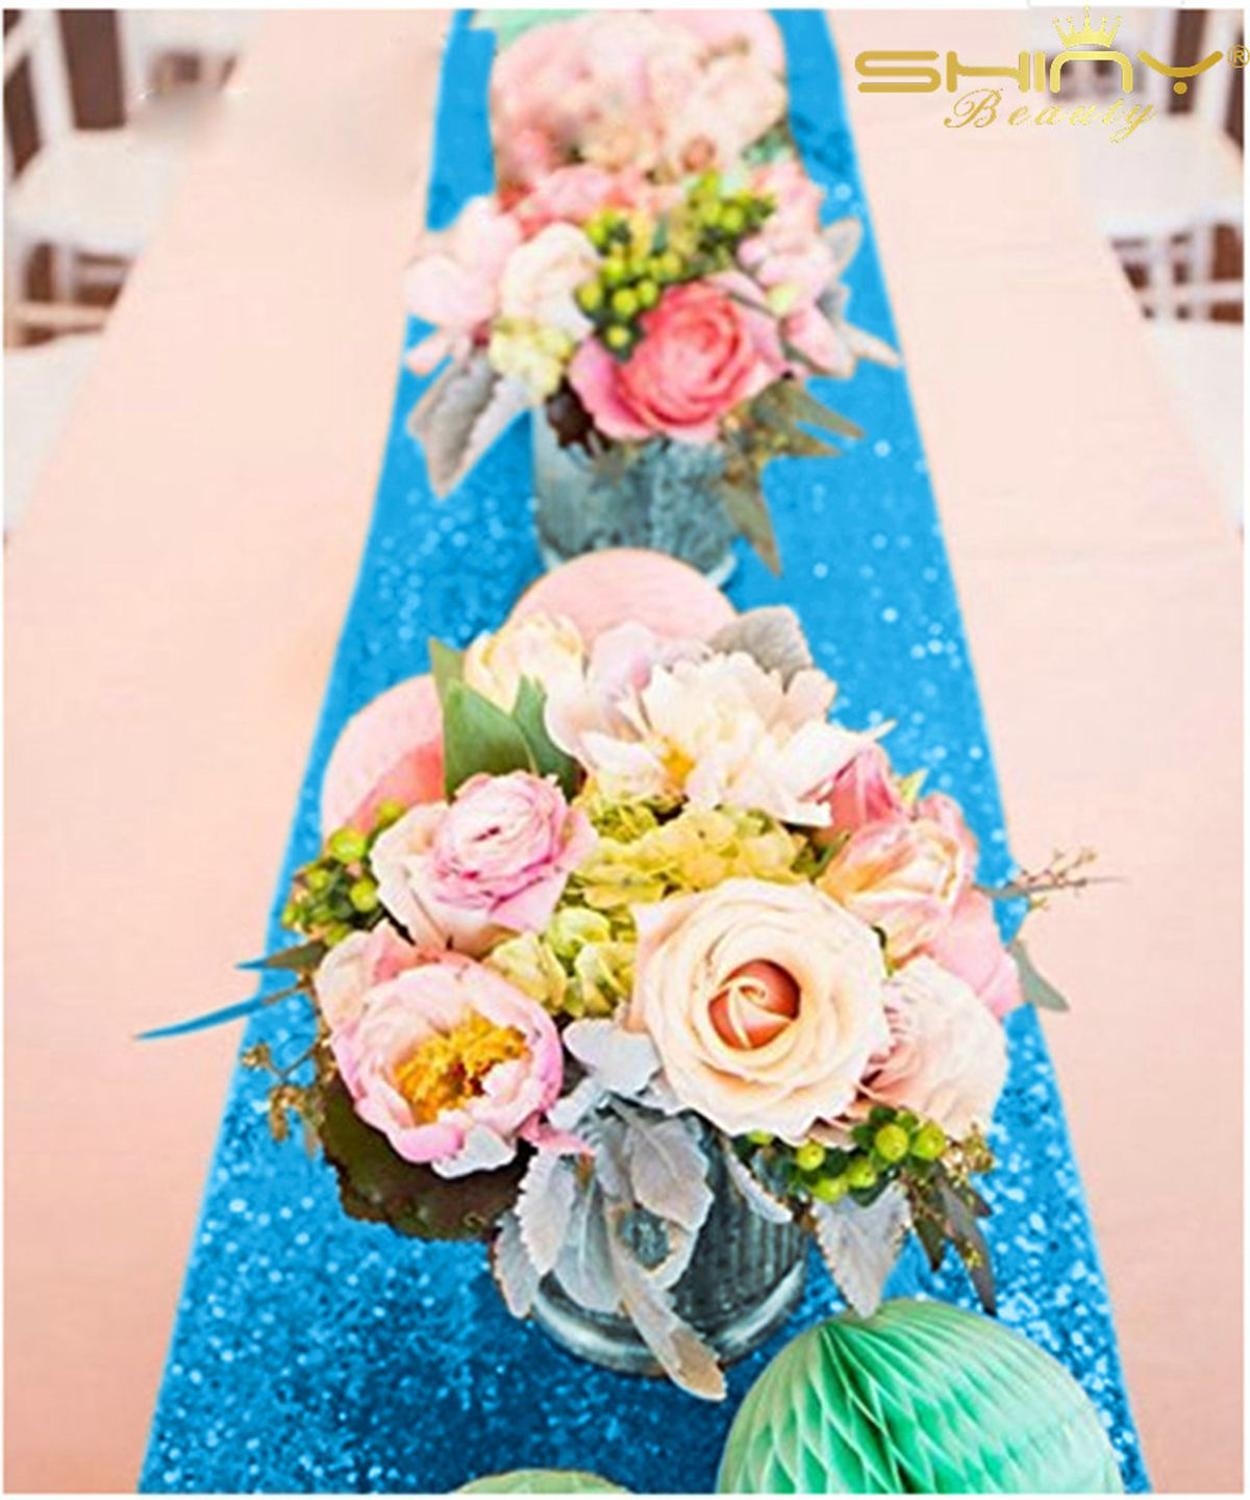 12x72-Inch Table Runners Turquoise Sequin Table Runners Elegant Table Decoration For Wedding Party-M1014